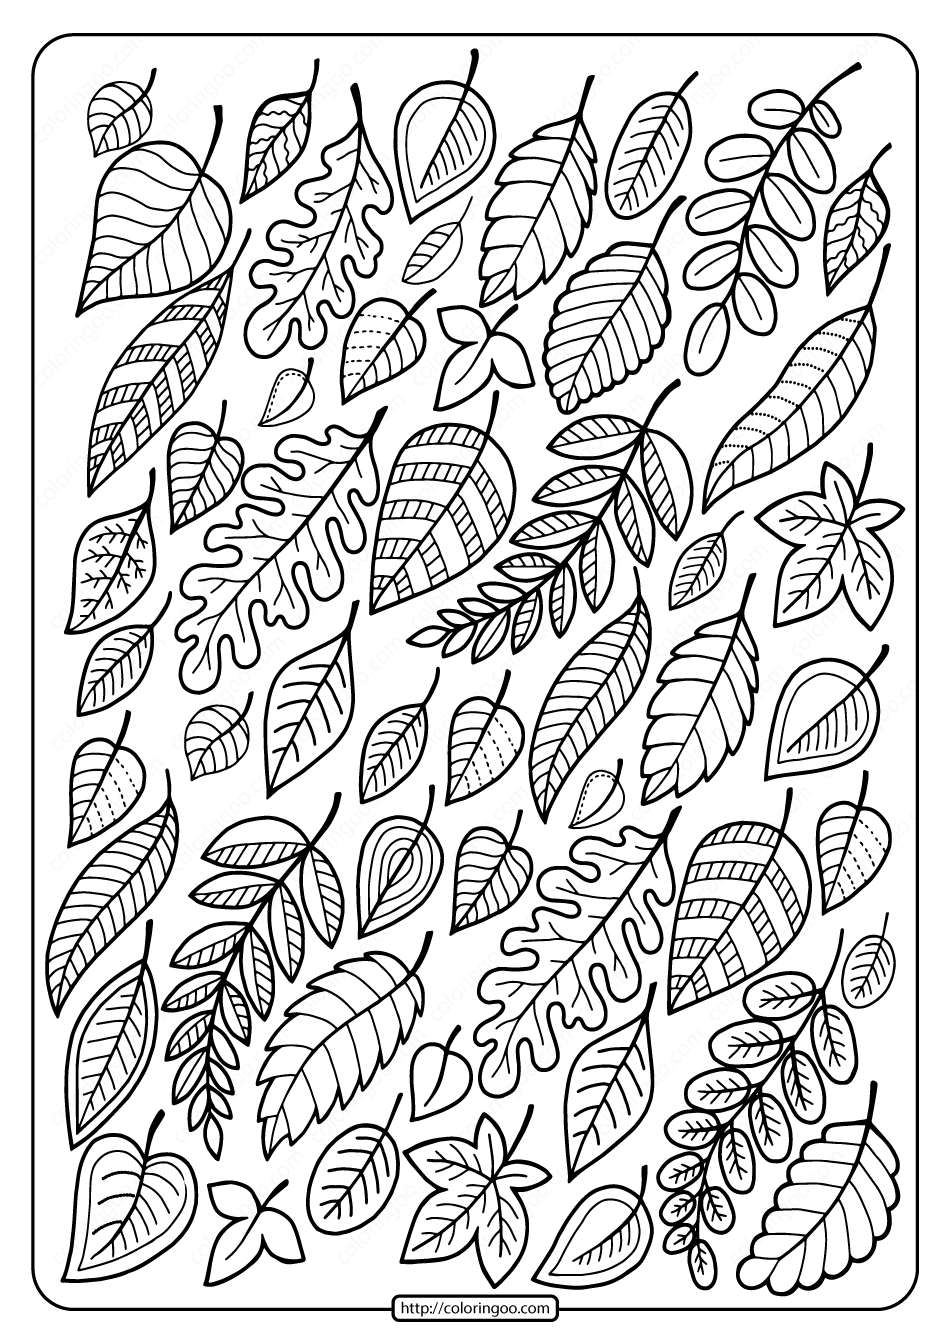 Free Printable Falling Leaves Coloring Page